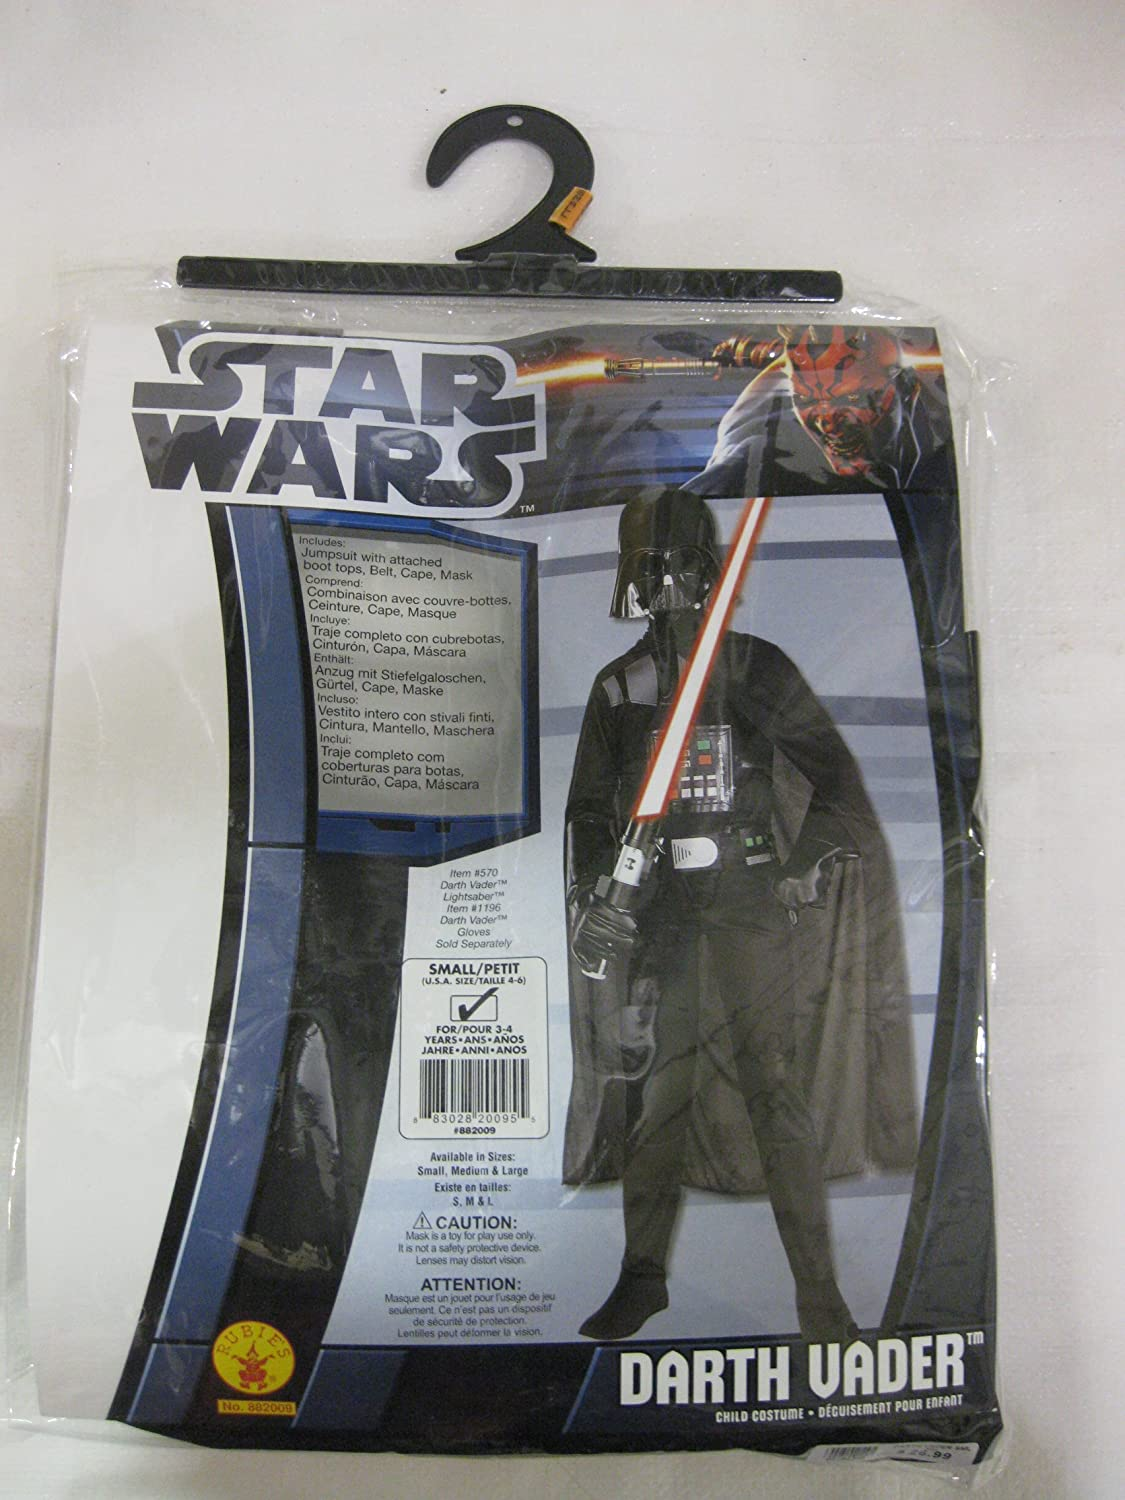 Amazon.com : Star Wars Darth Vader Small Halloween Costume NO MASK : Makeup Bags And Cases : Beauty